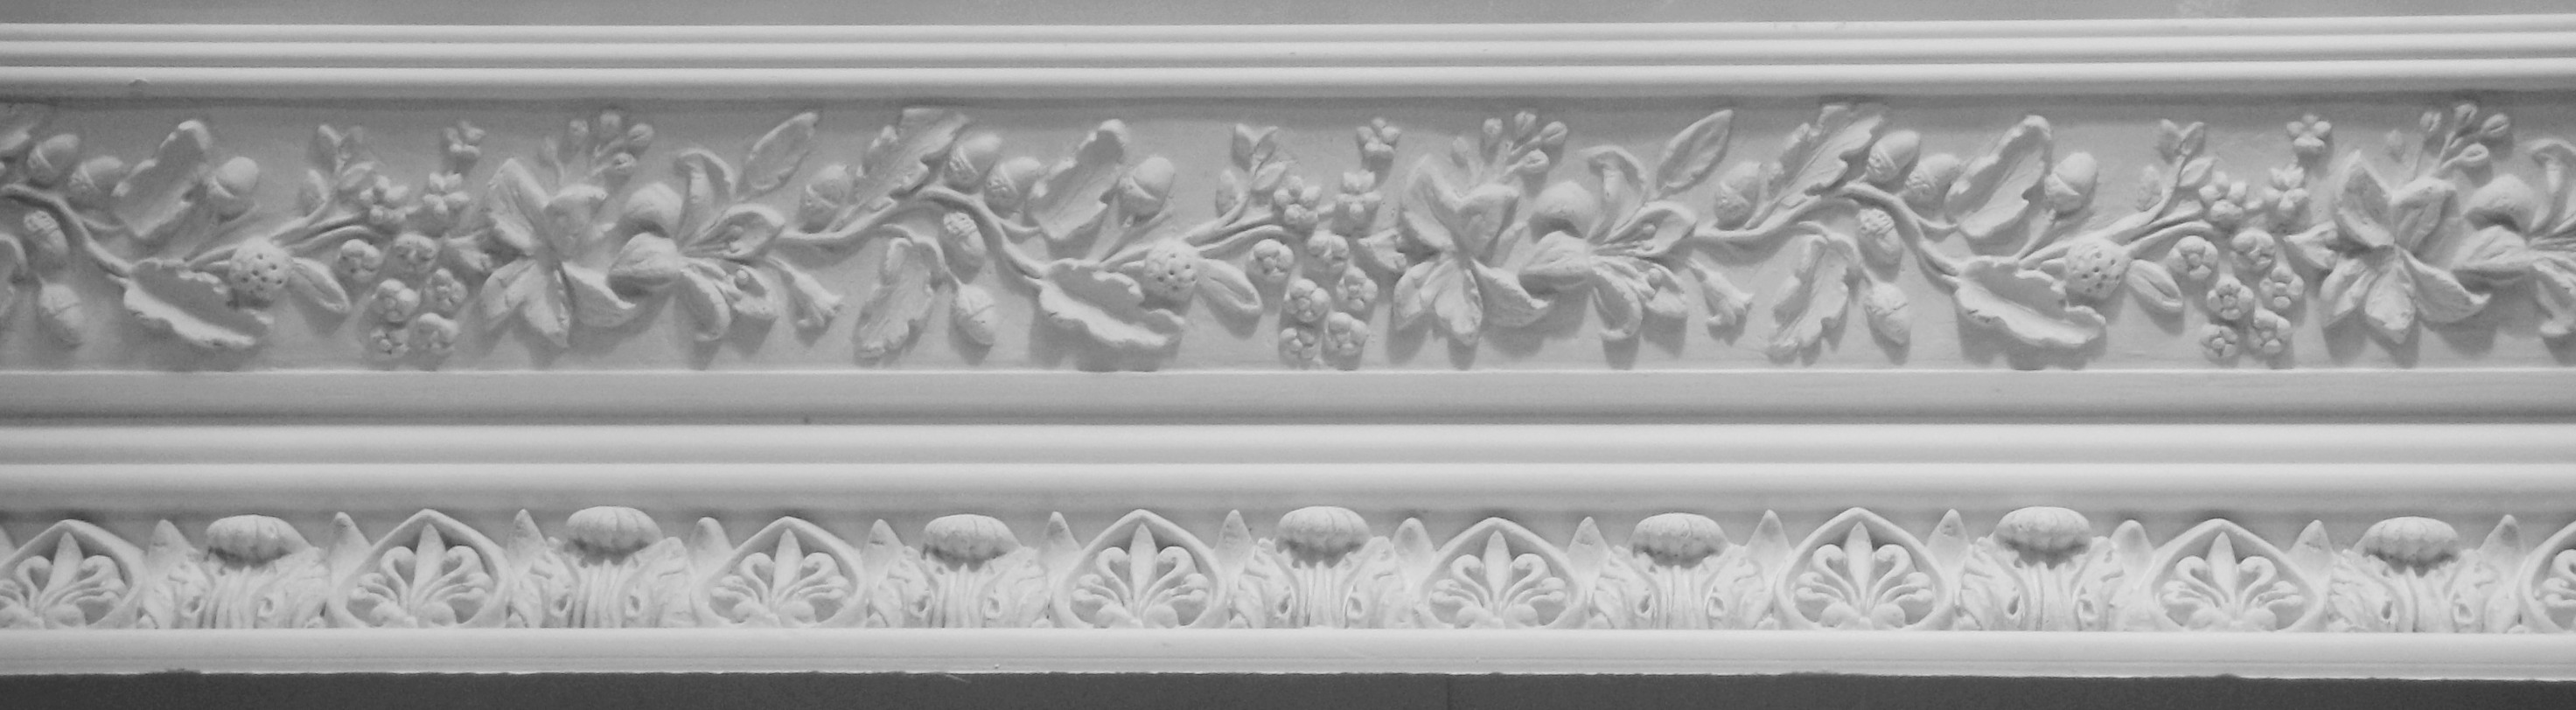 Victorian Coving Designs A Wide Variety Of Victorian Cornices